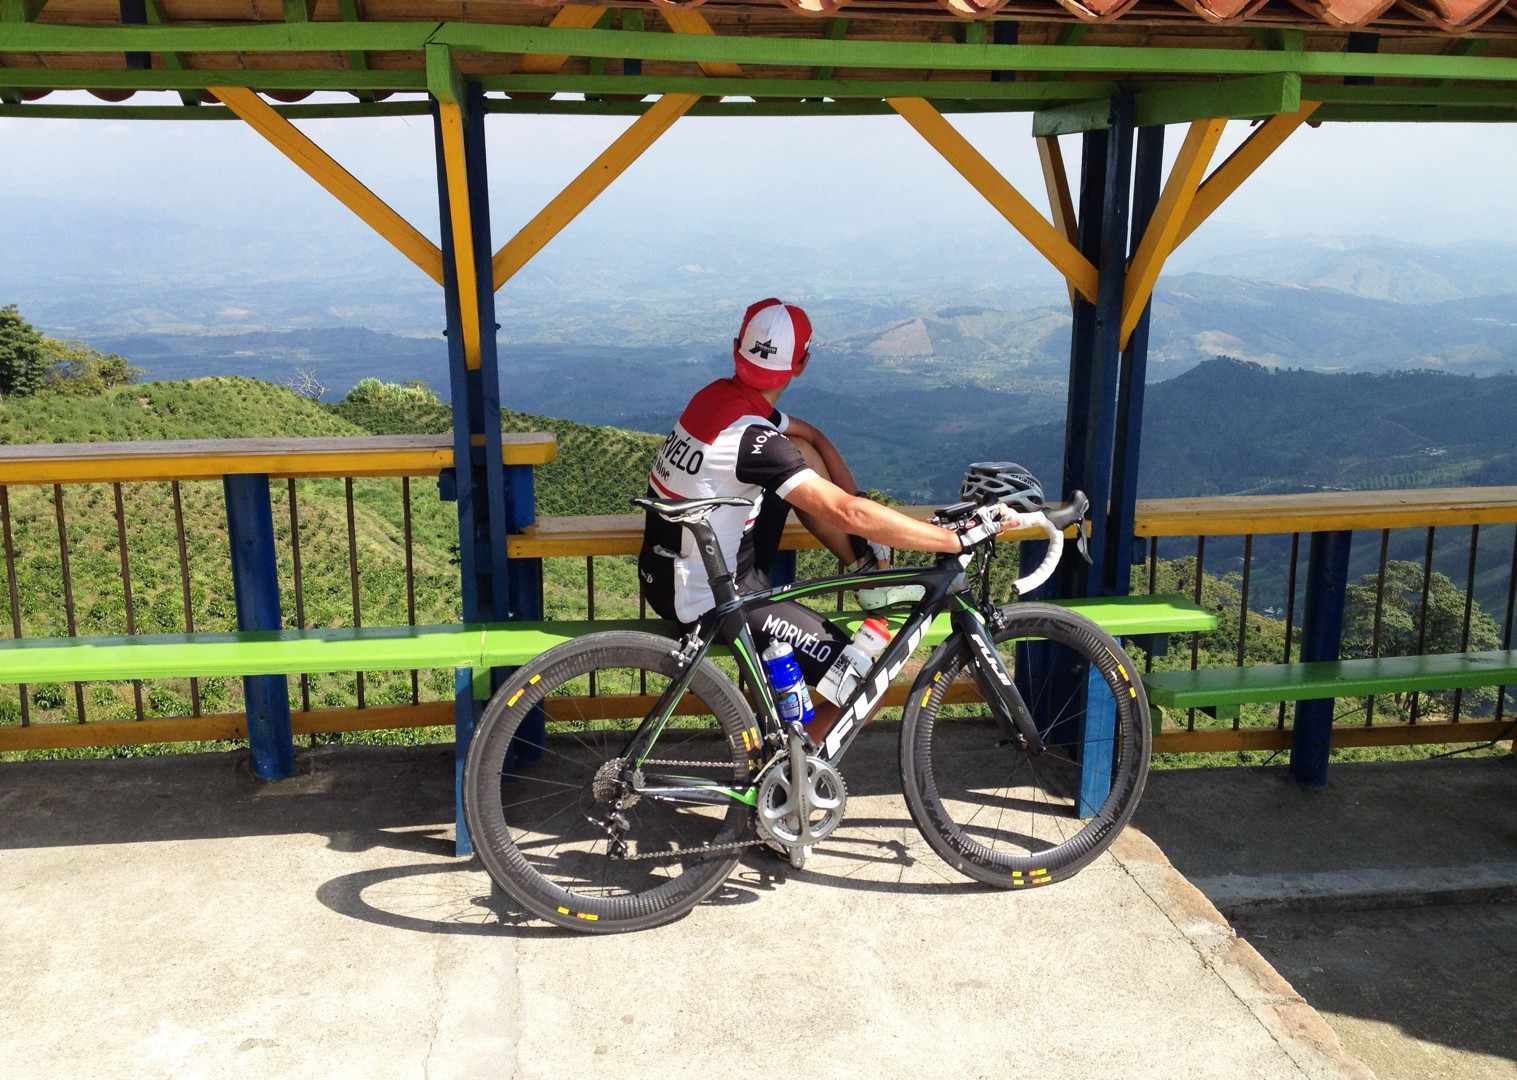 road-cycling-holiday-in-clombia-with-skedaddle-andean-mountains.JPG - Colombia - Tres Cordilleras - Guided Road Cycling Holiday - Road Cycling